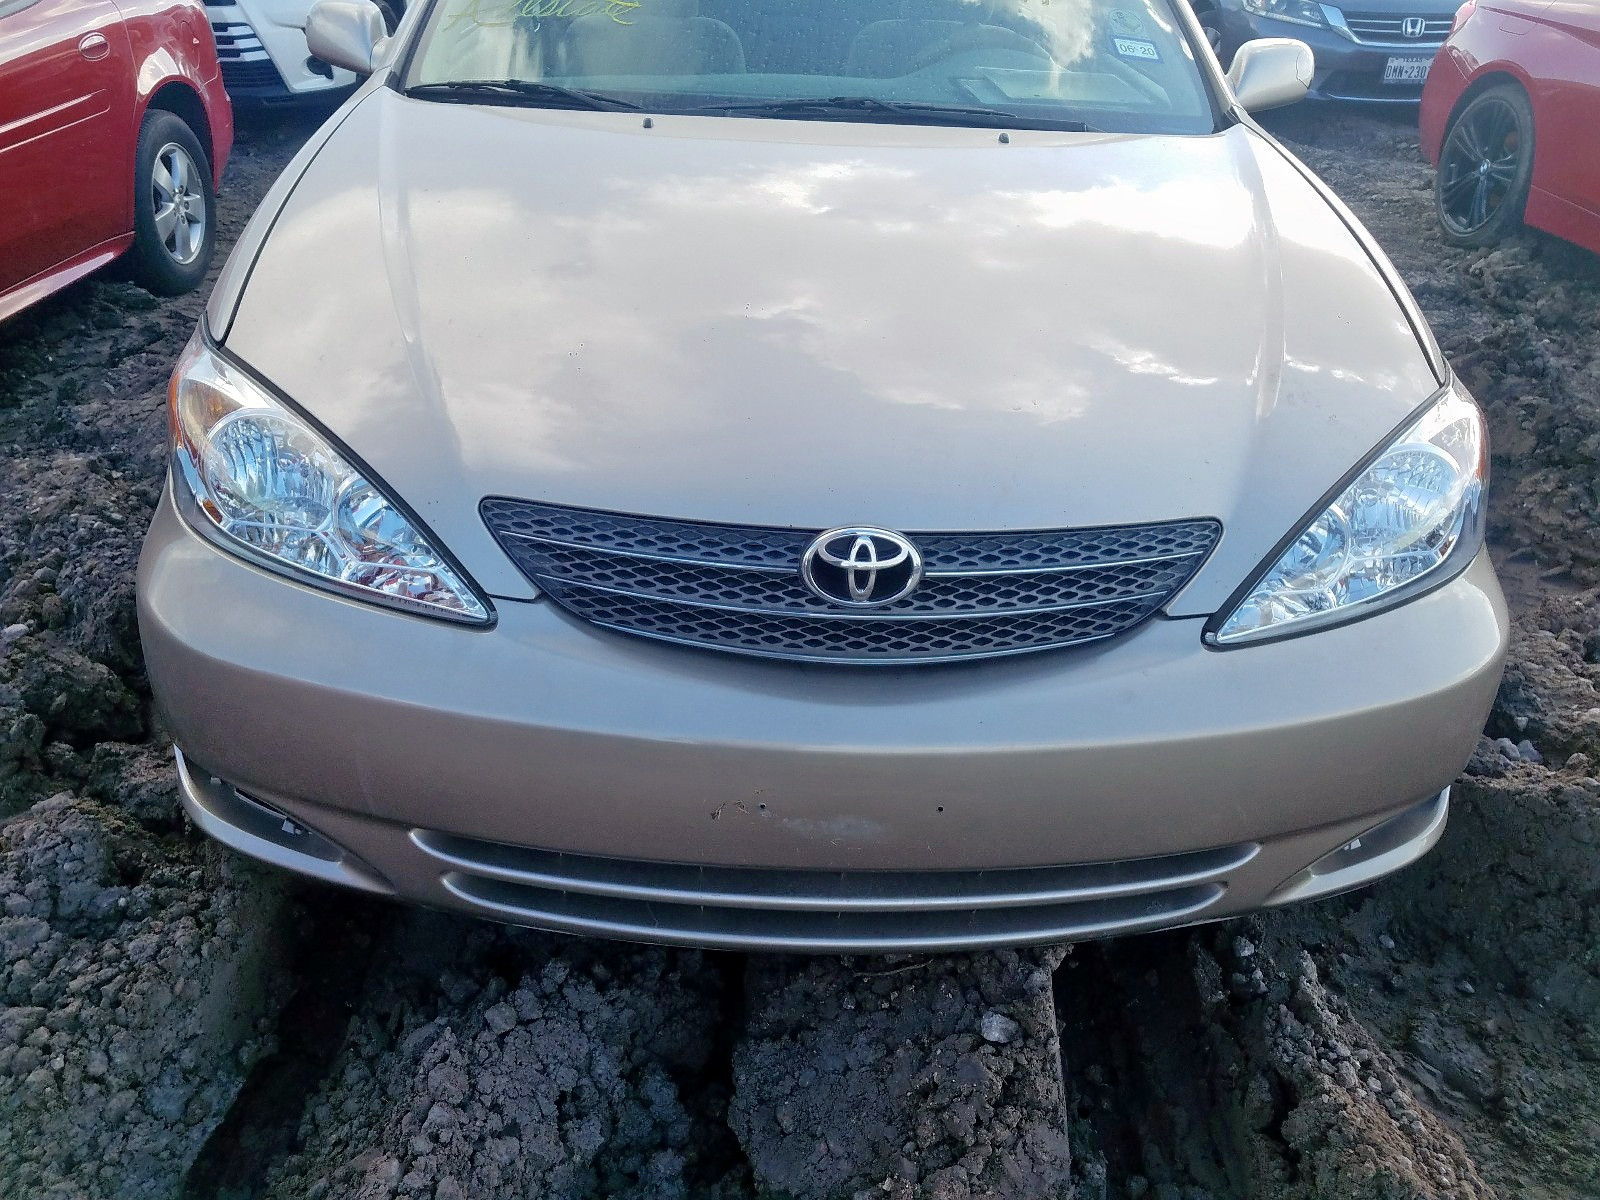 2002 Toyota Camry Le 2.4L engine view